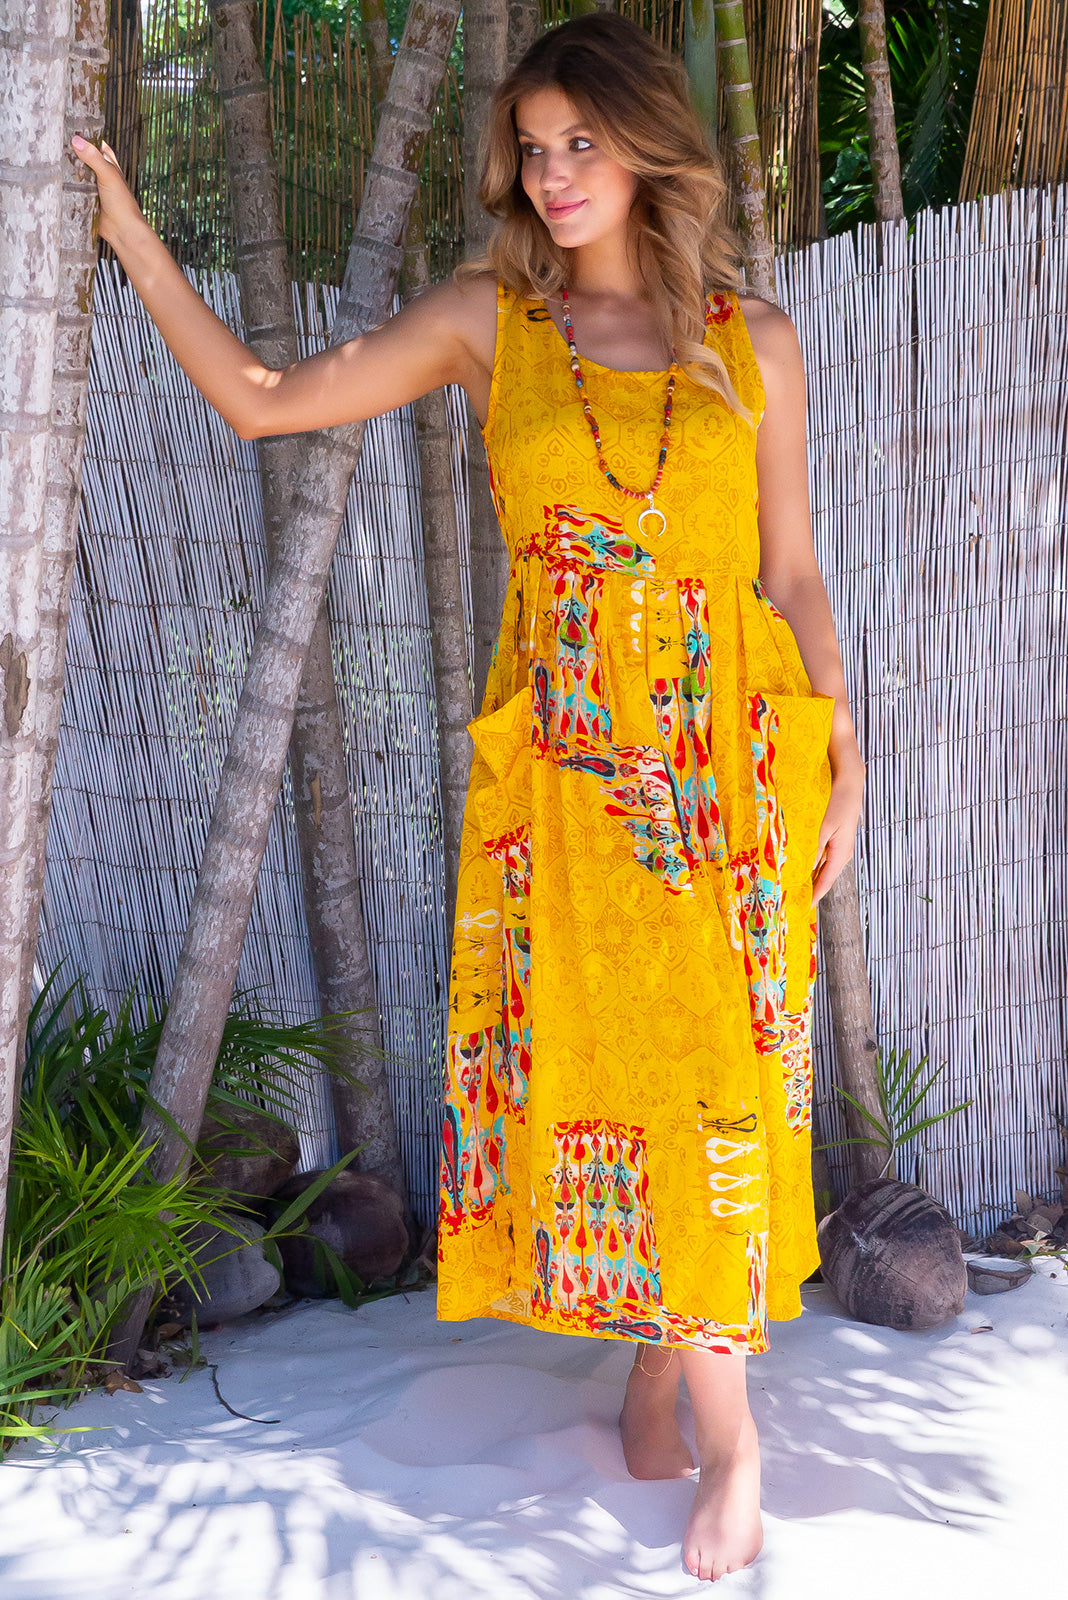 Bondi Beach Fez Yellow Dress, bohemian summers style, 100% cotton, sheer fabric, deep front pockets, adjustable waist with three coconut buttons on each side at back allowing garment to be cinched, print placement will be different on all dresses, loose fit, bright golden mustard base with large red, teal, white and black retro print.